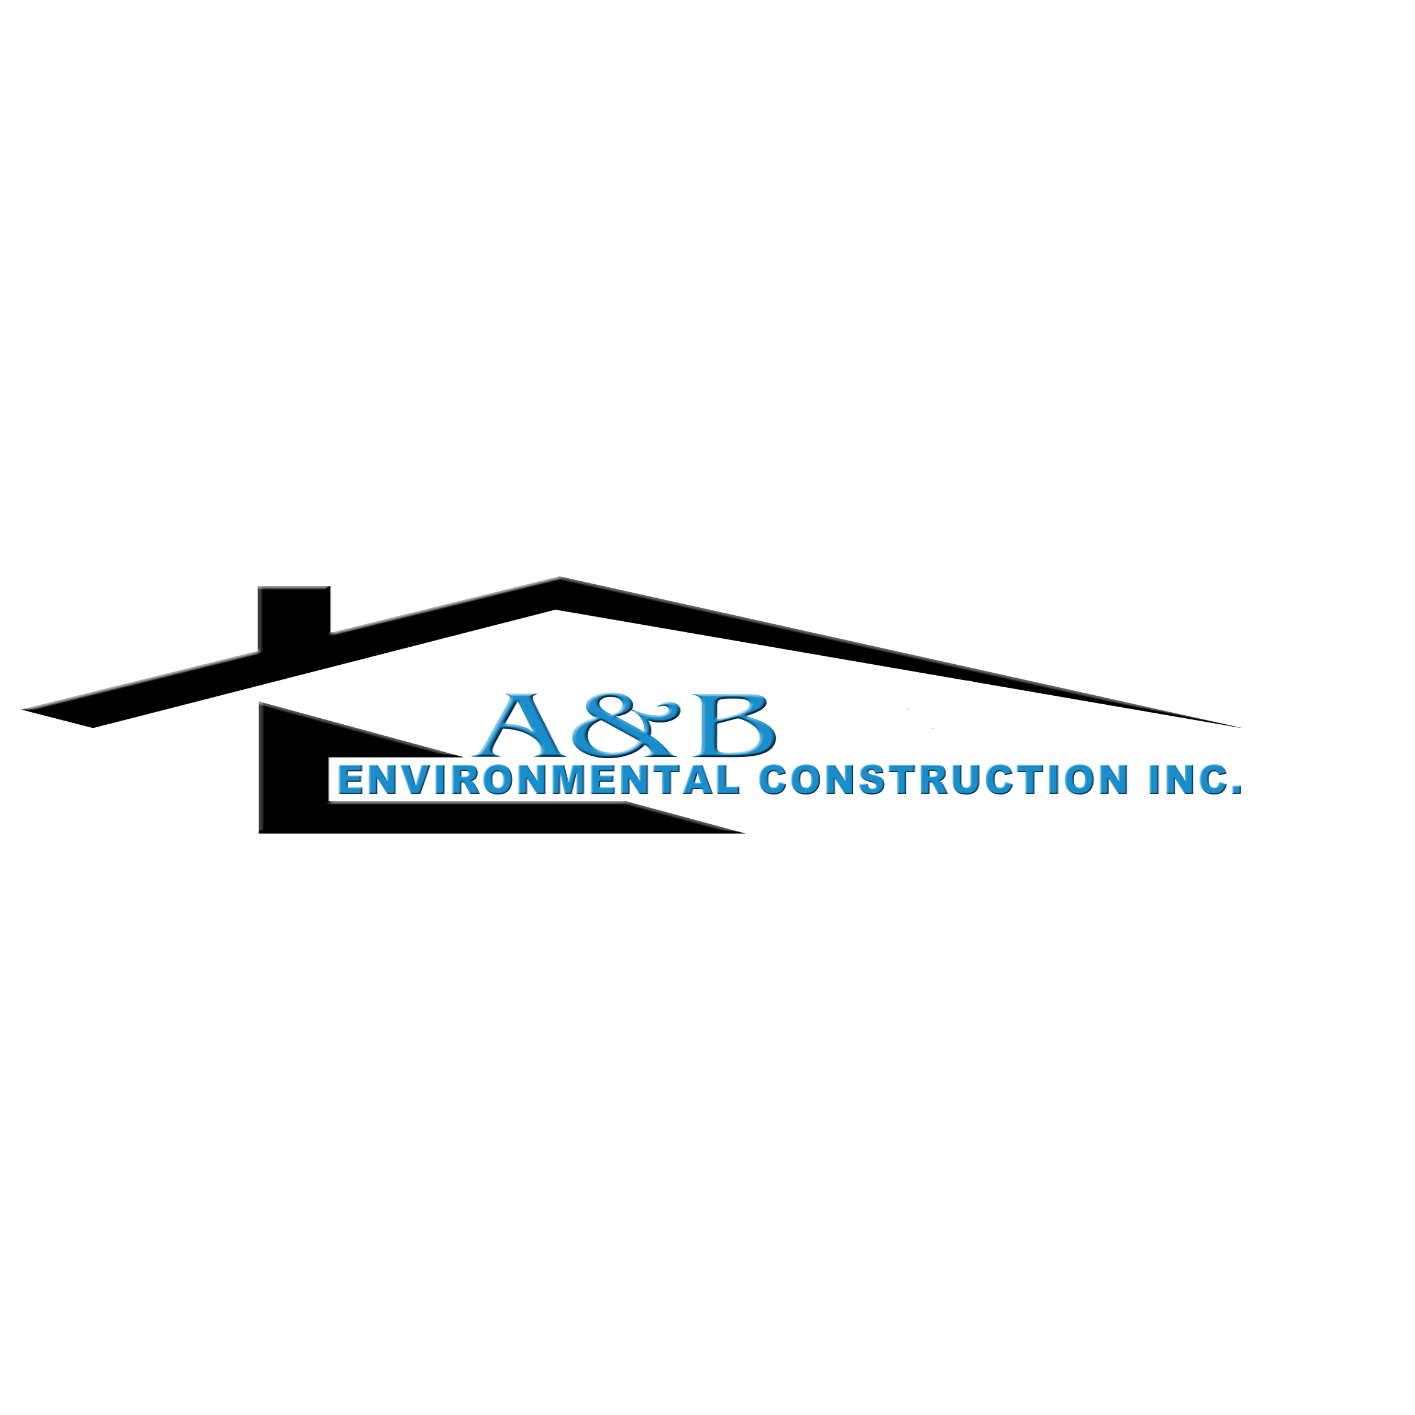 A & B Environmental Construction Inc.